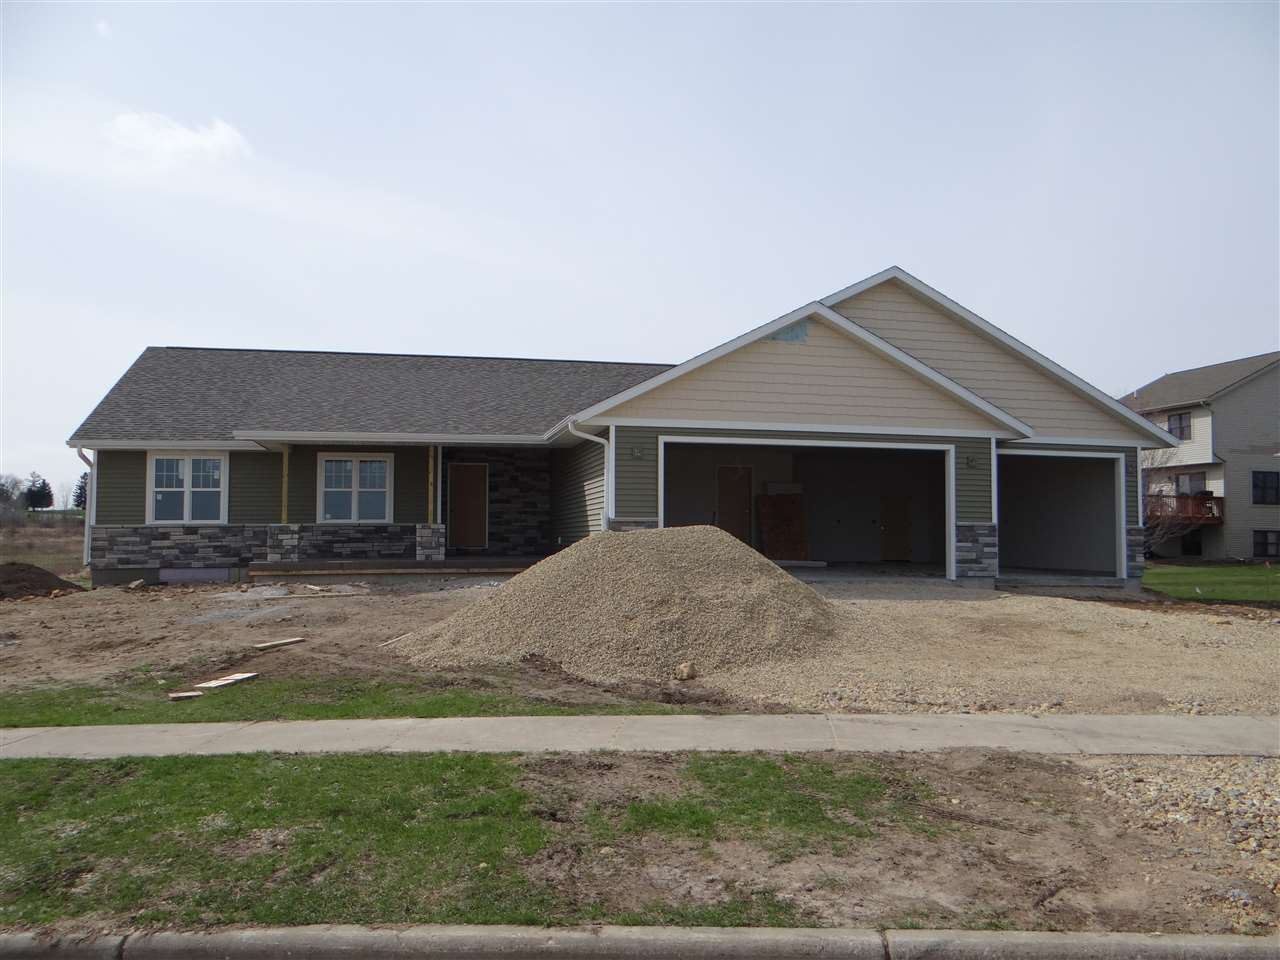 228 Lillehammer Ln, Mount Horeb, WI 53572 - #: 1877786